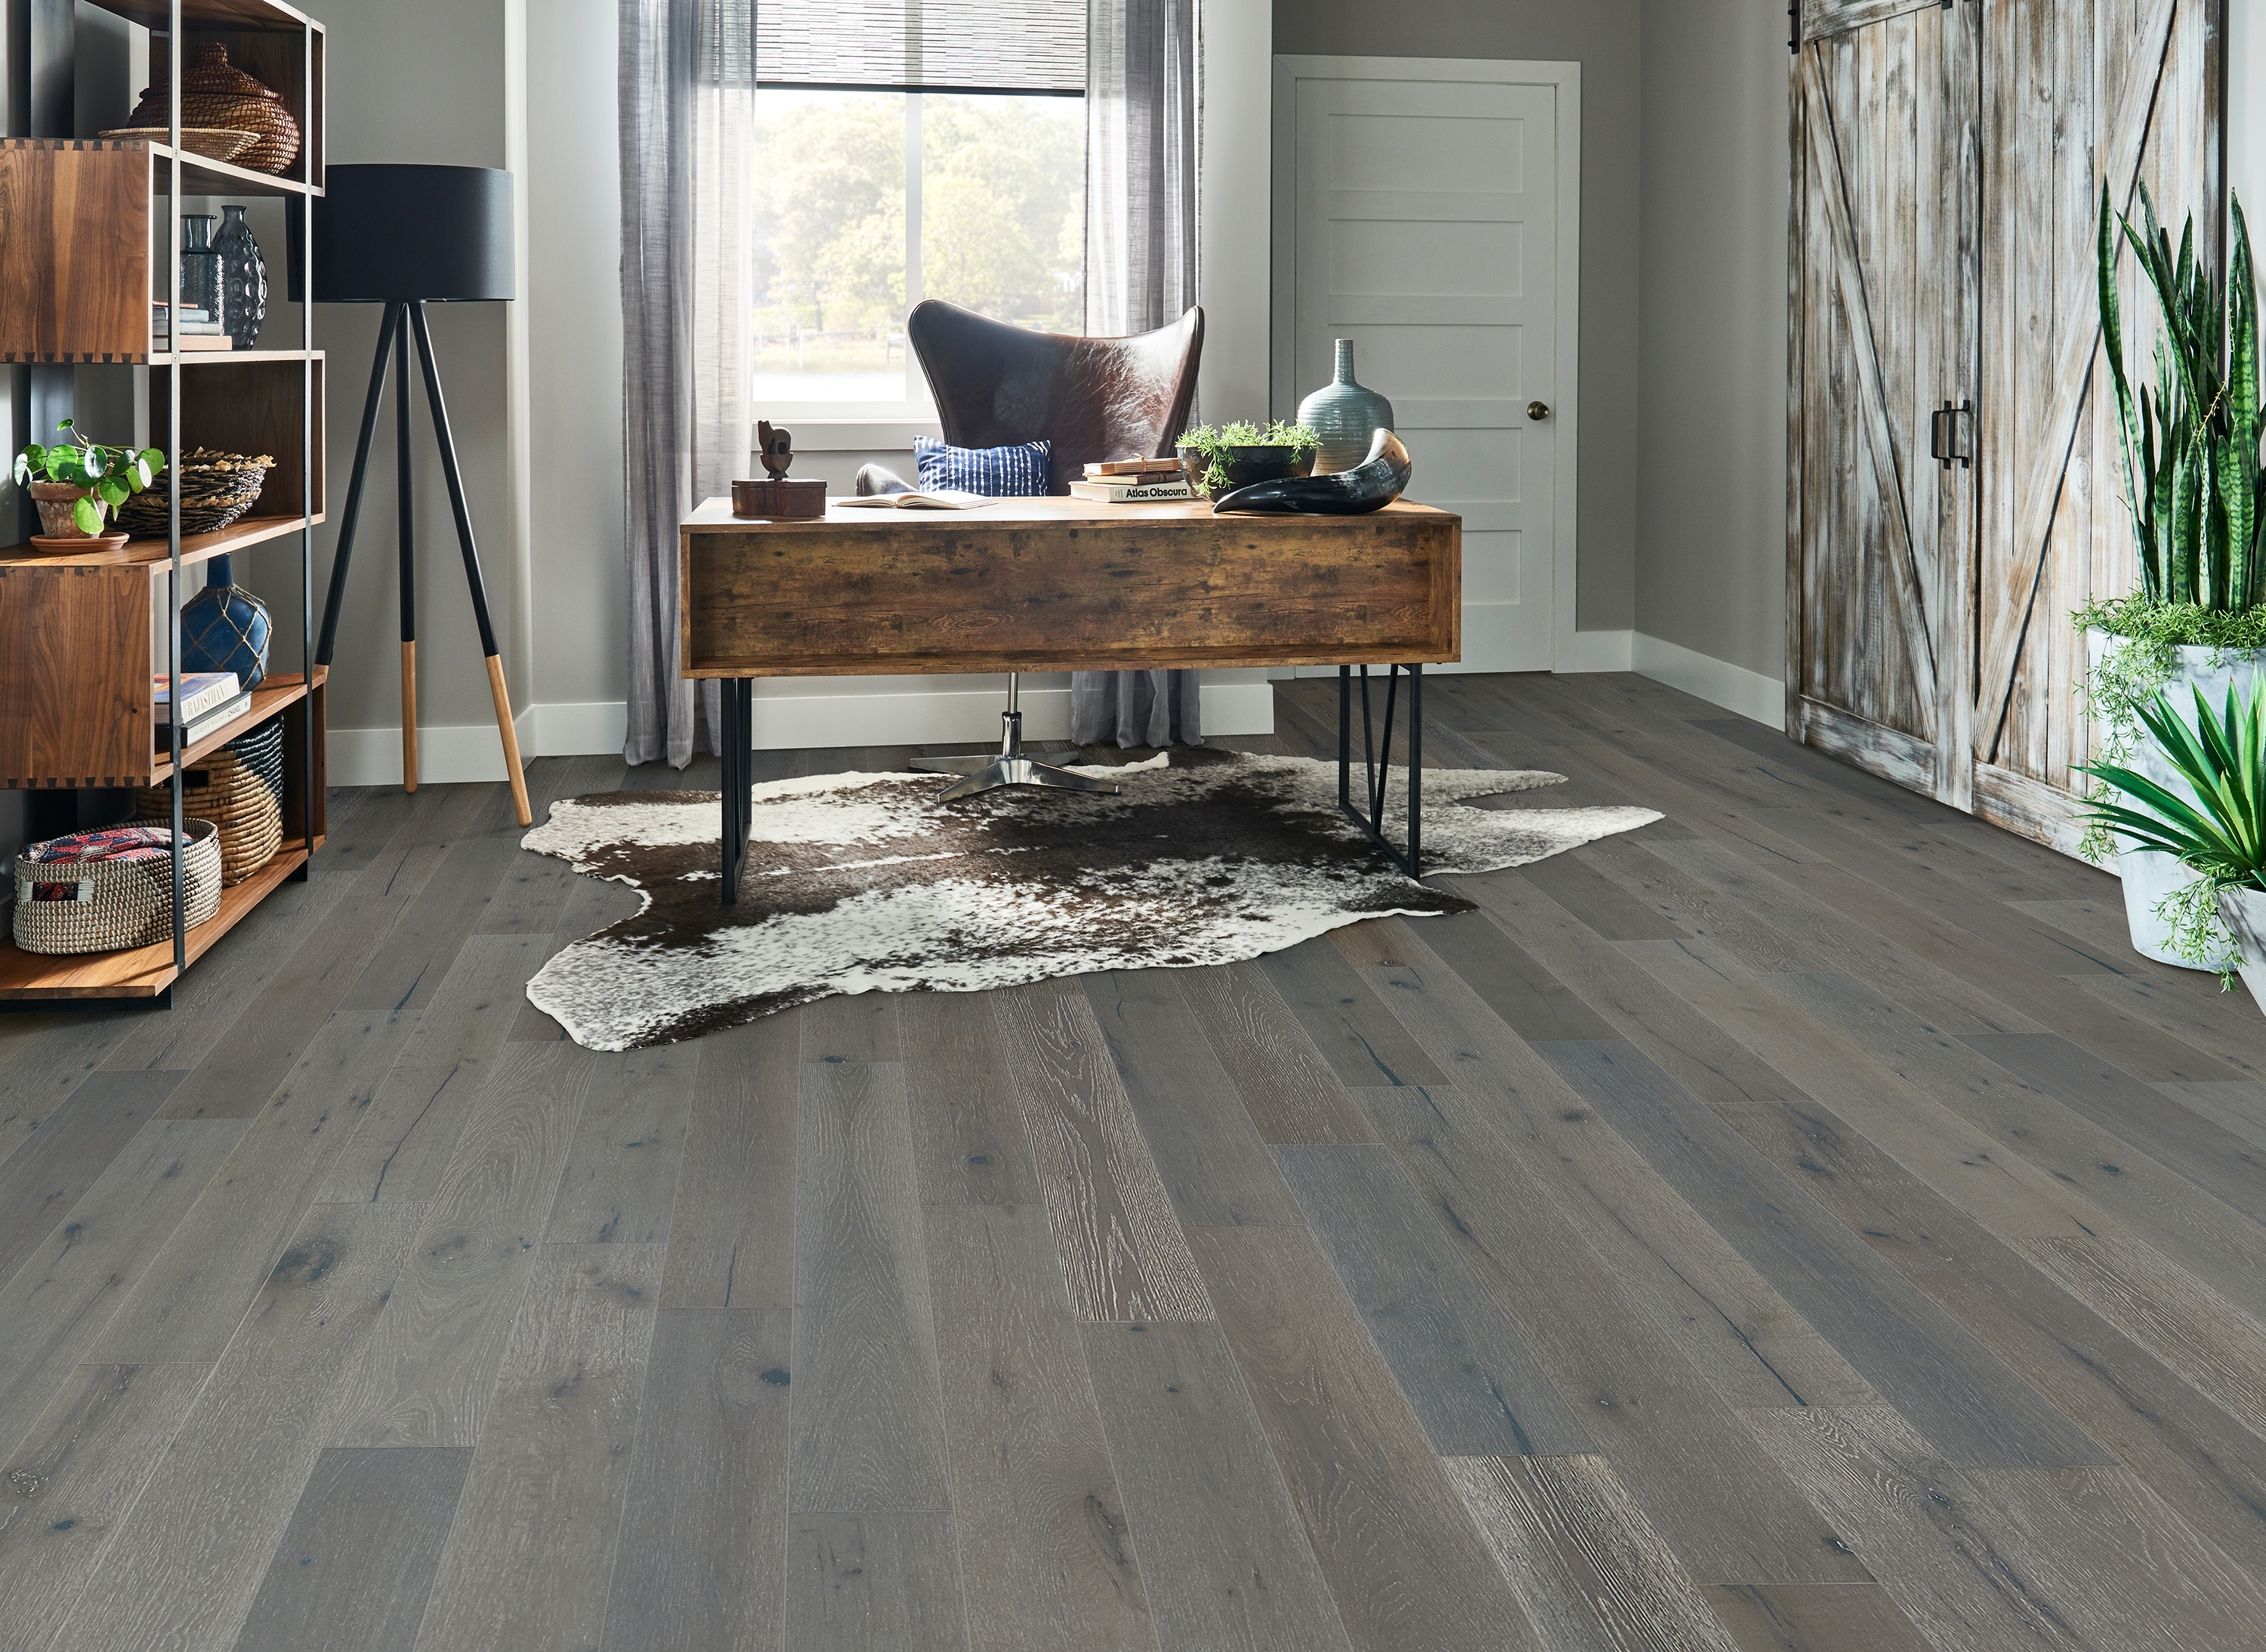 Brushed Impressions Seashade Clouds Engineered Hardwood BRBH63EK92W